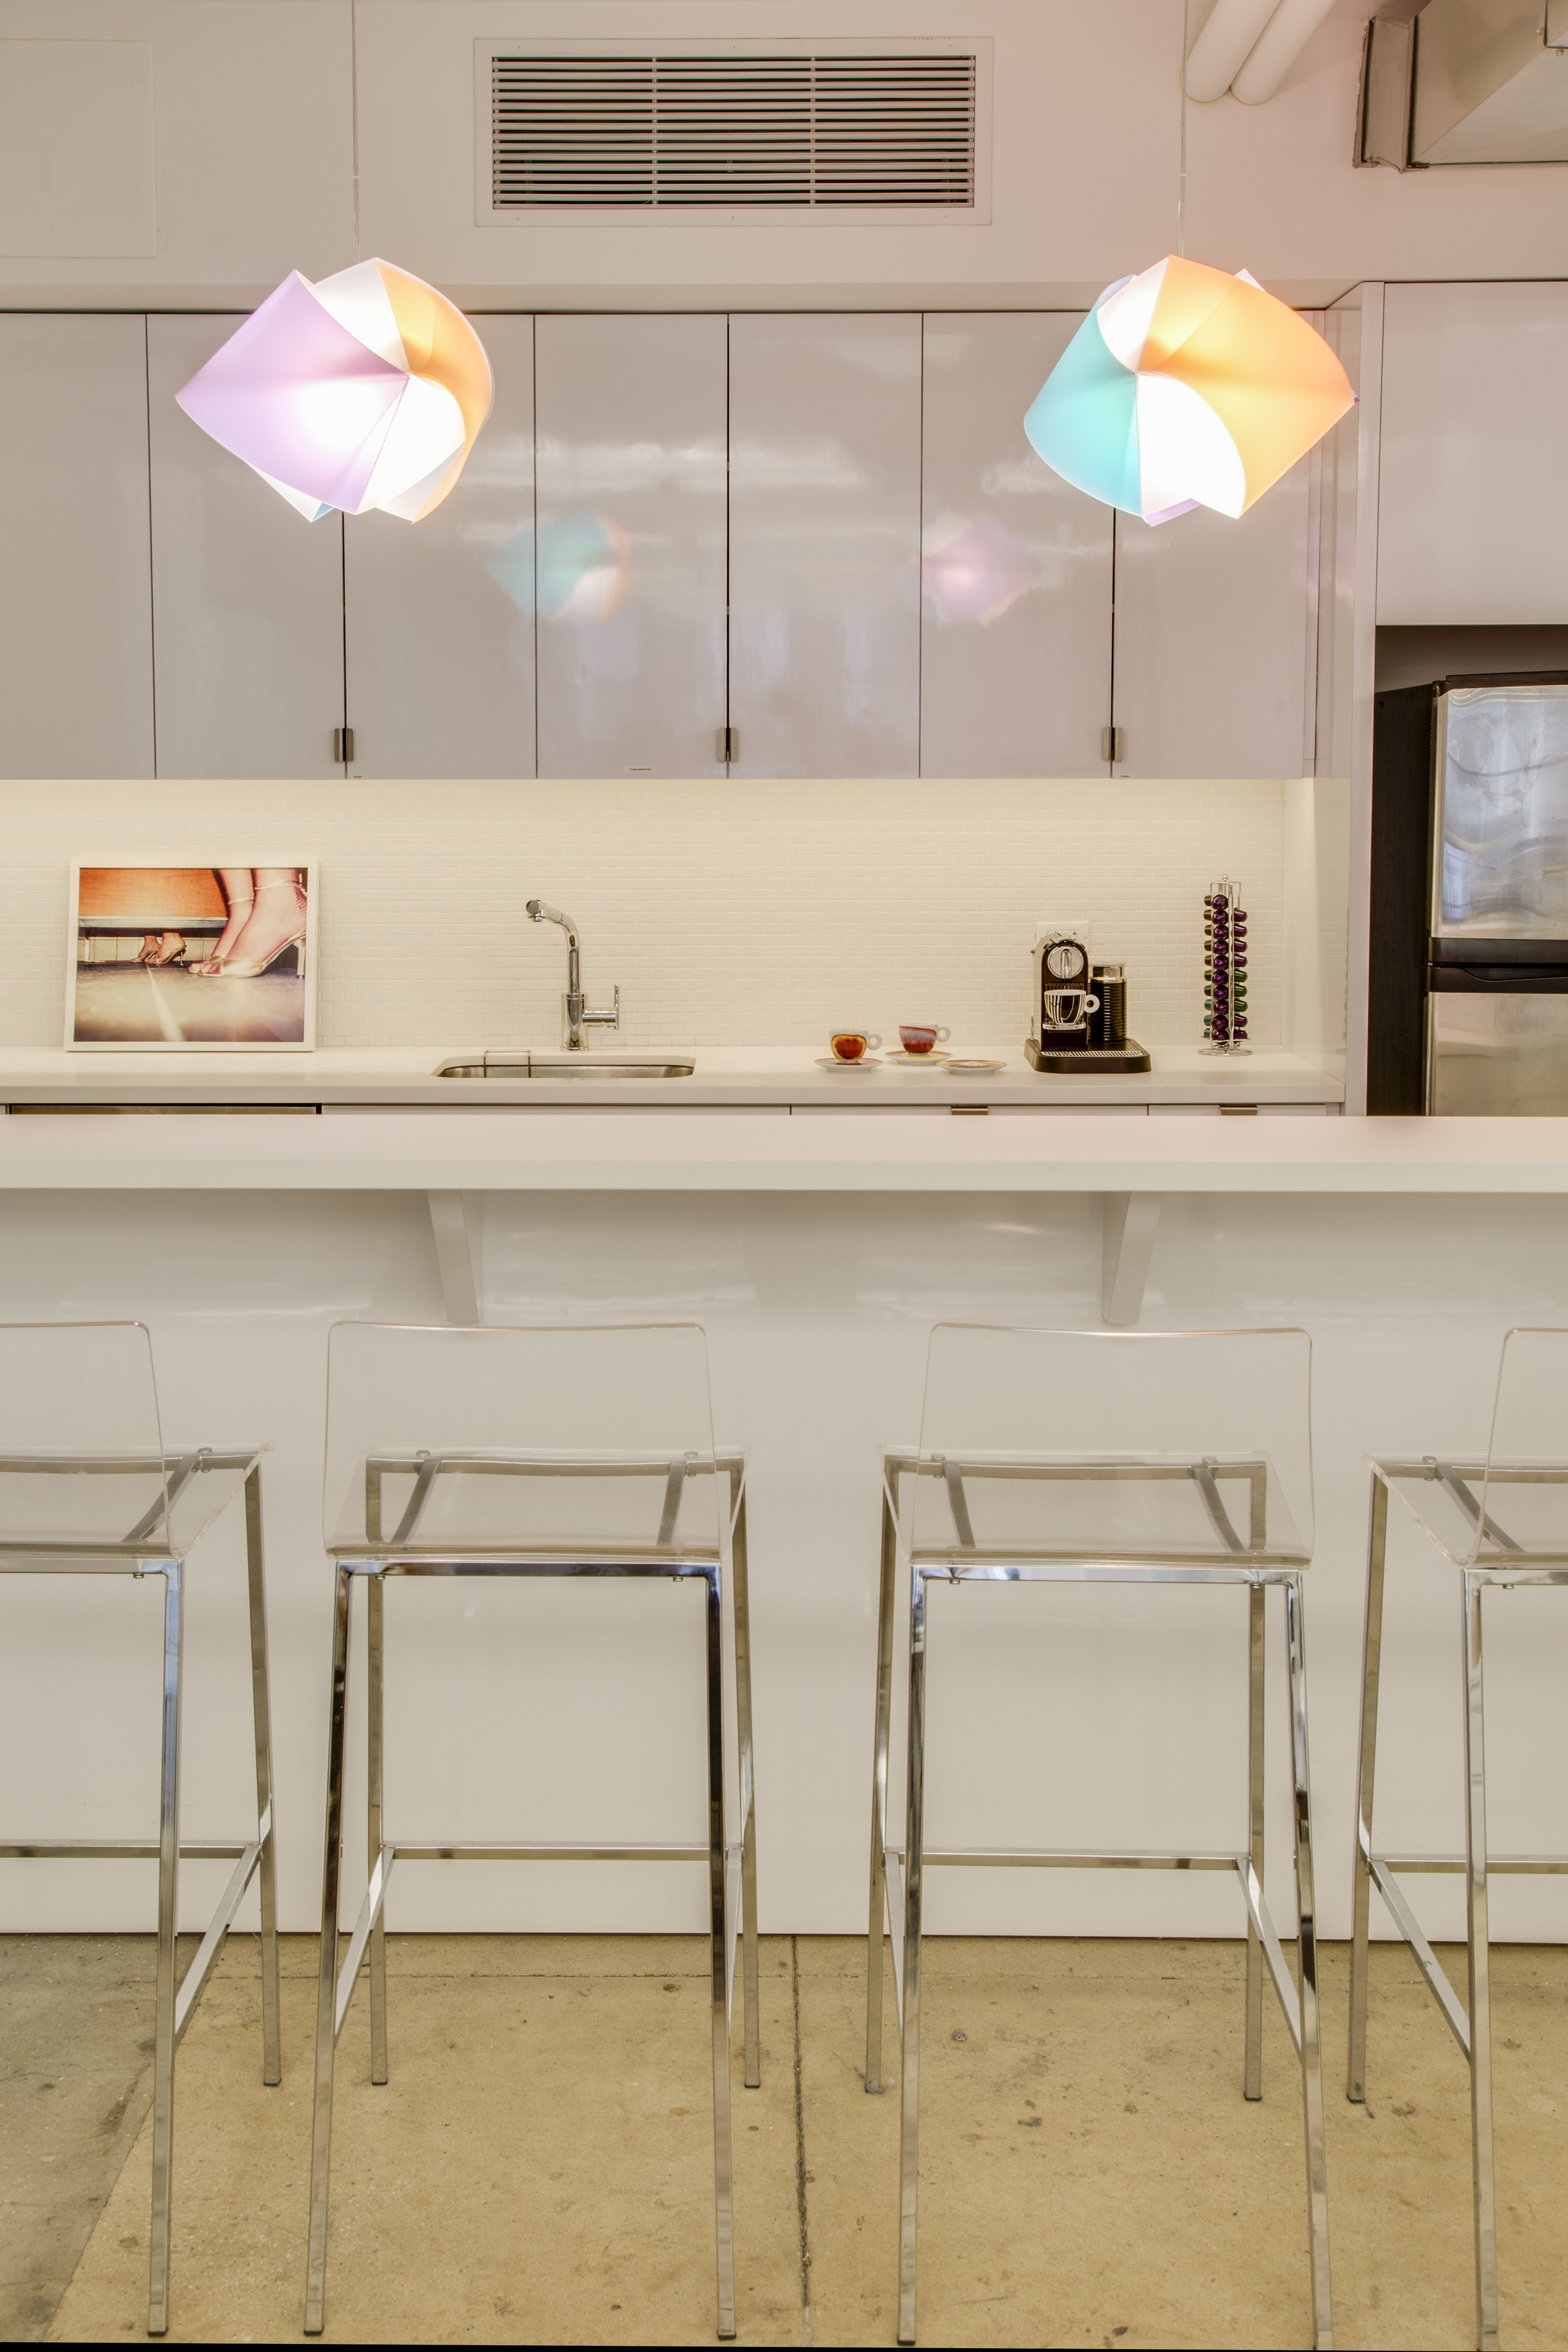 The kitchen area with SLAMP pendants and lucite barstools. The photograph on the back is by Christopher Anderson.